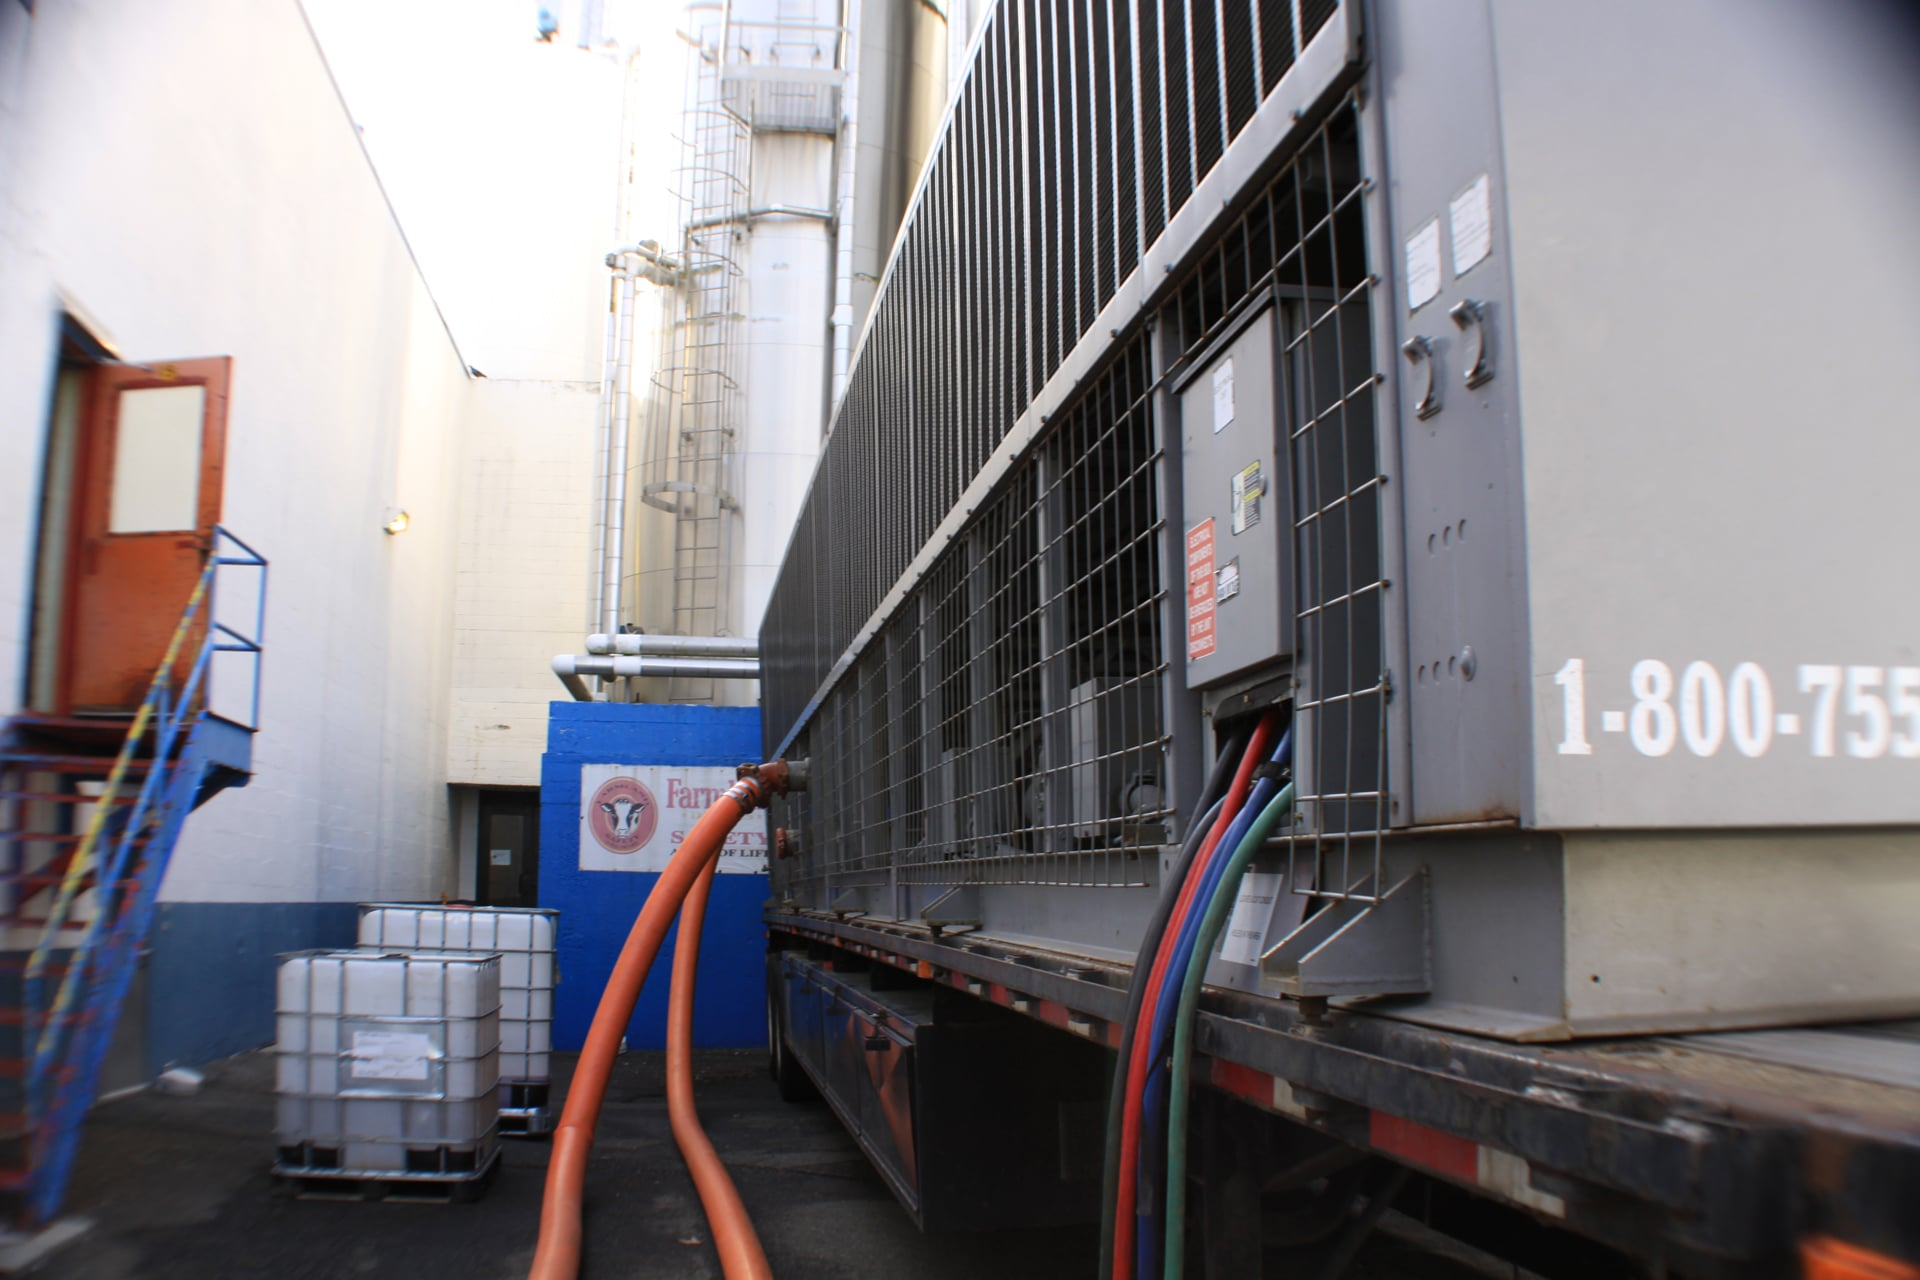 Temporary Chiller Poughkeepsie NY, Air Cooled Chiller Rental Poughkeepsie NY